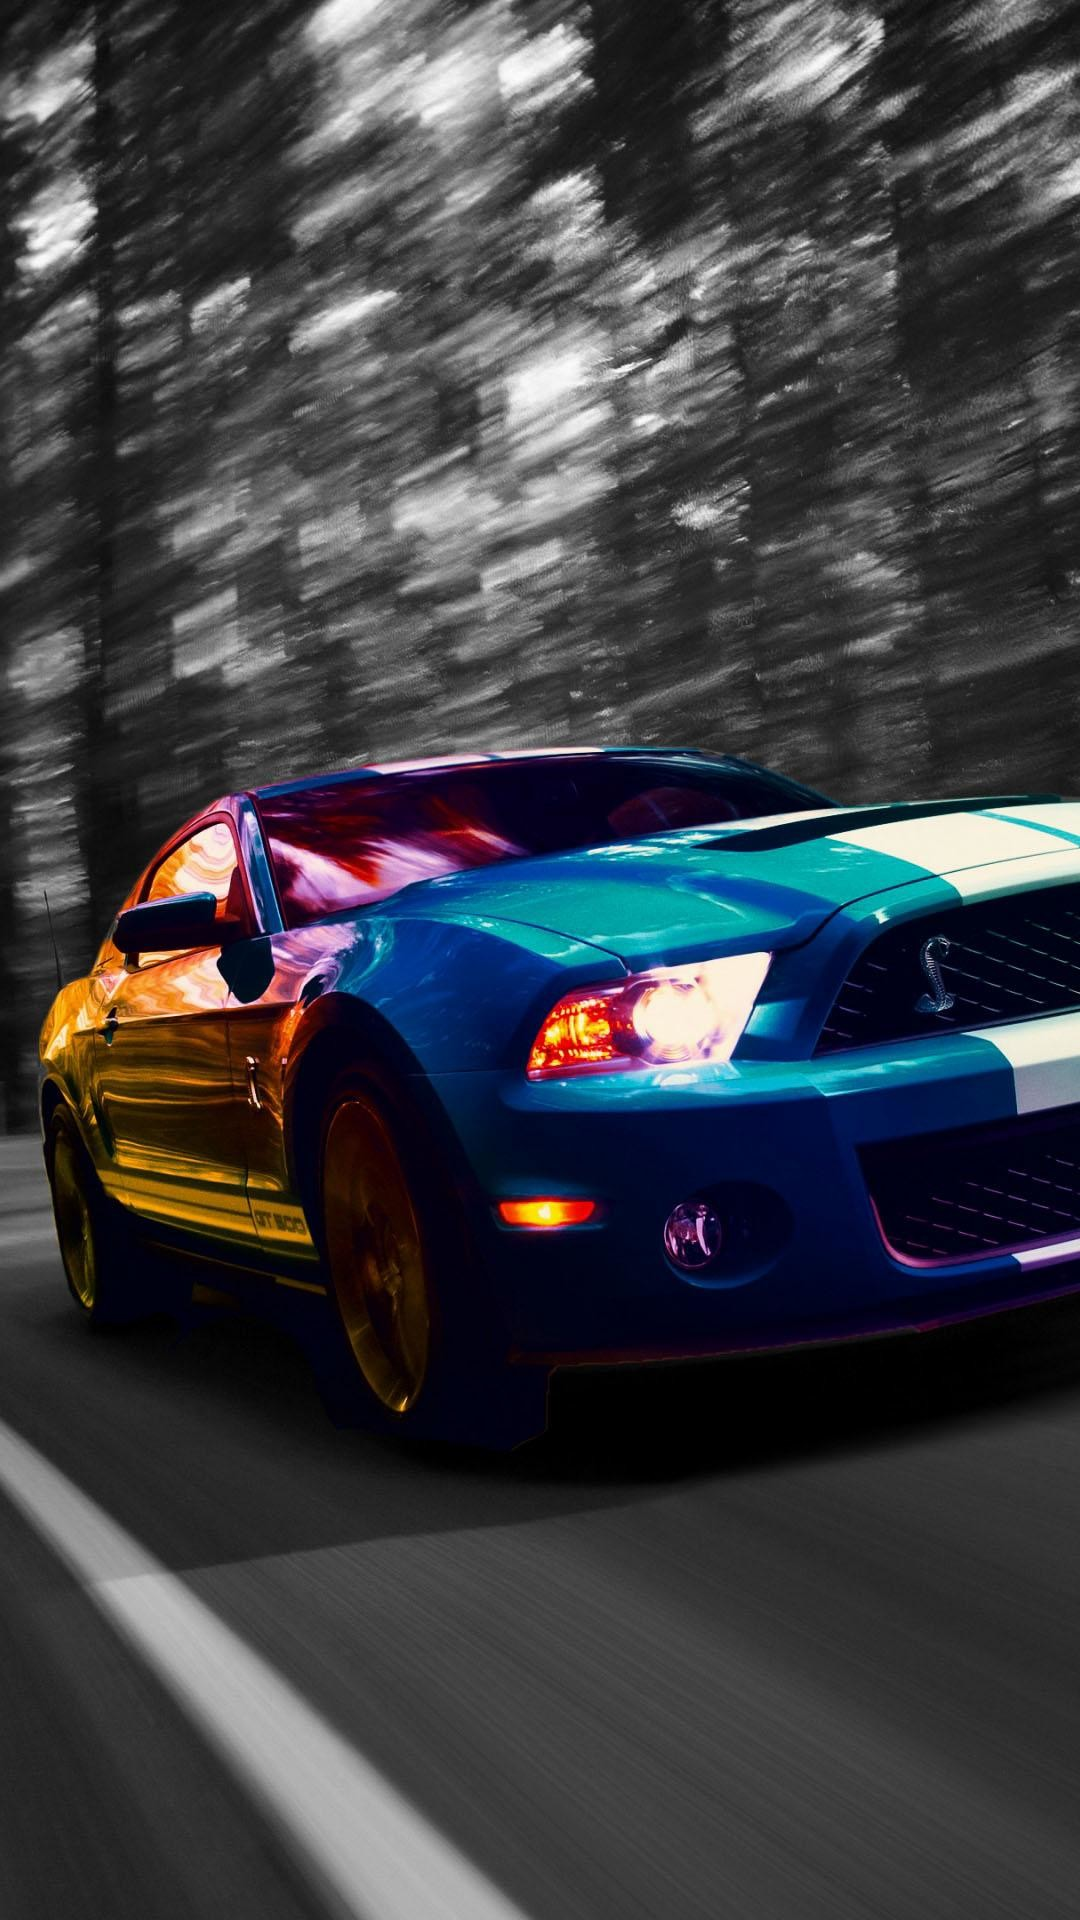 wallpaper.wiki-Ford-Shelby-GT500-PIC-WPC004033